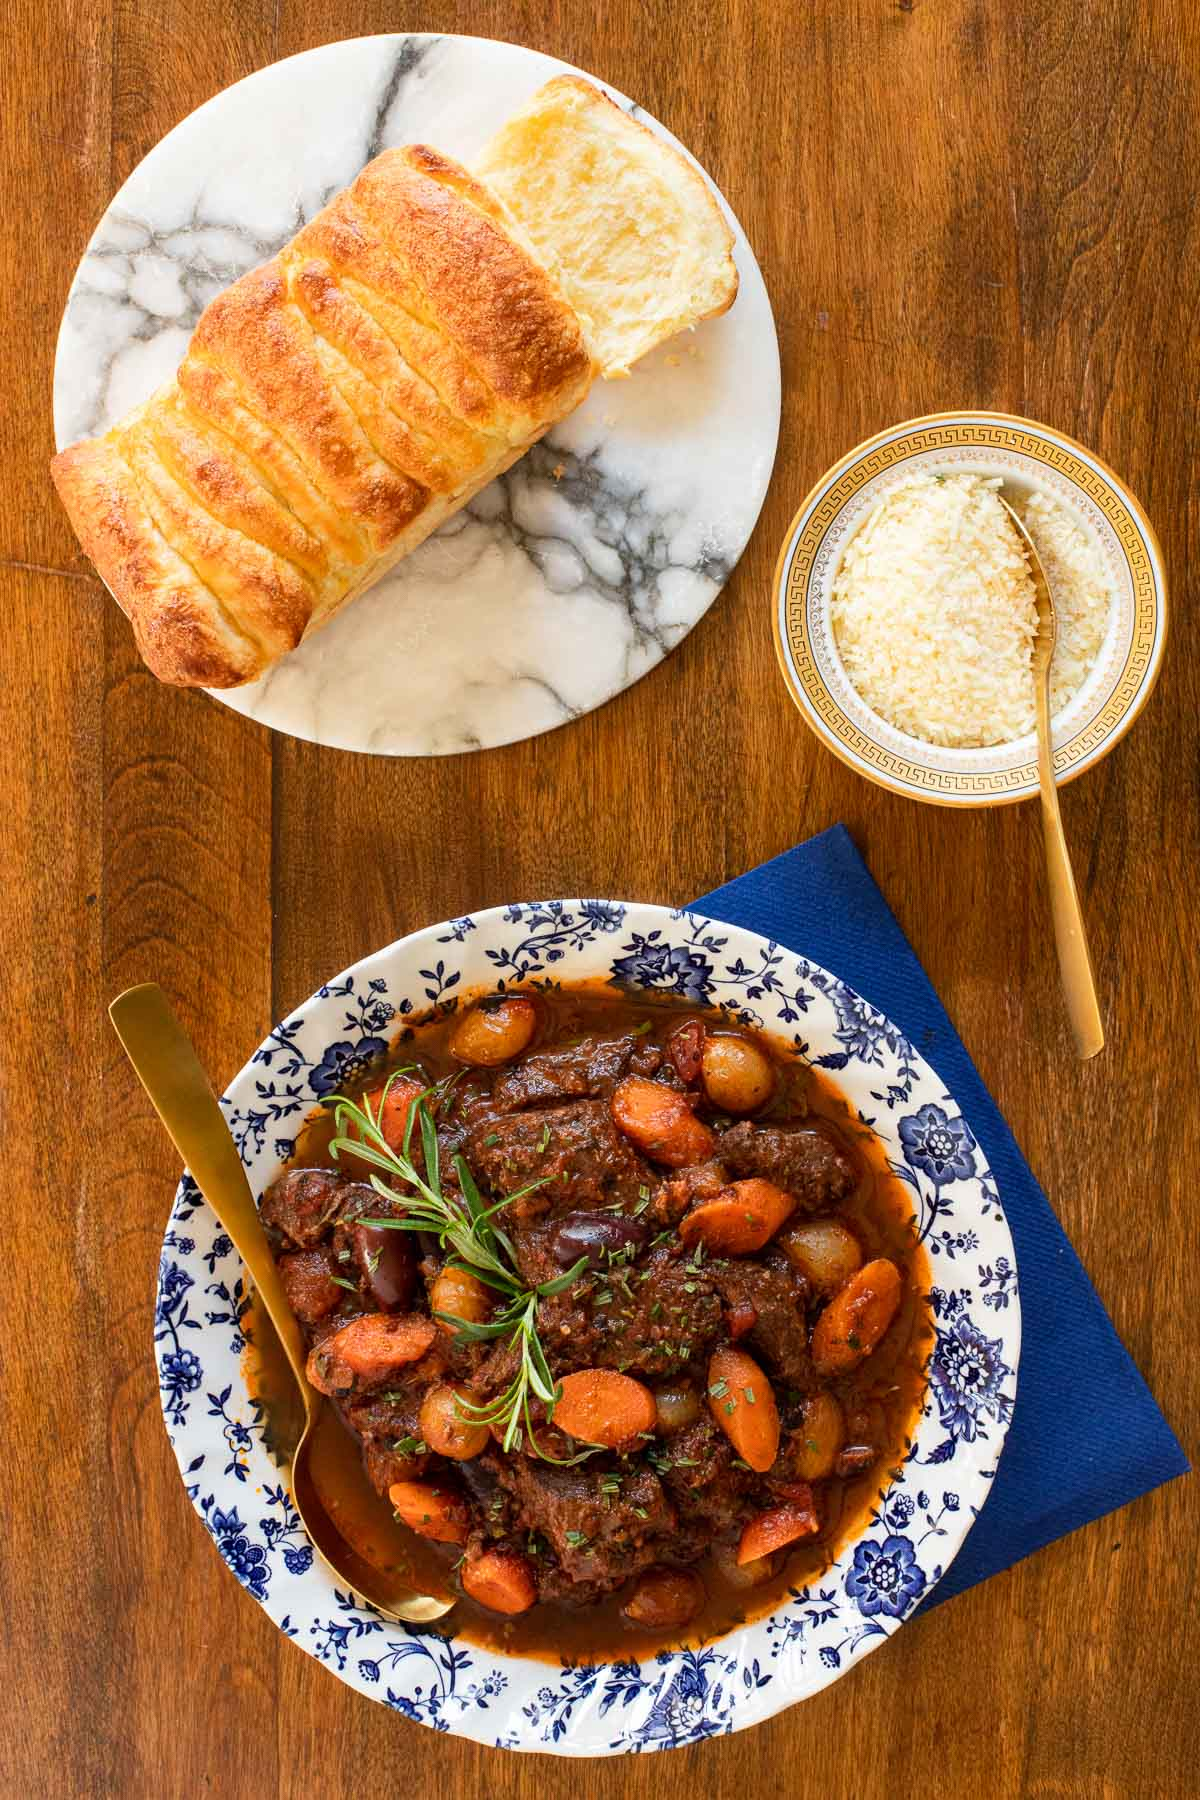 Vertical overhead photo of a blue and white patterned bowl of Slow Braised Italian Beef Stew with a loaf of crusty homemade bread and a dish of shredded cheese nearby.